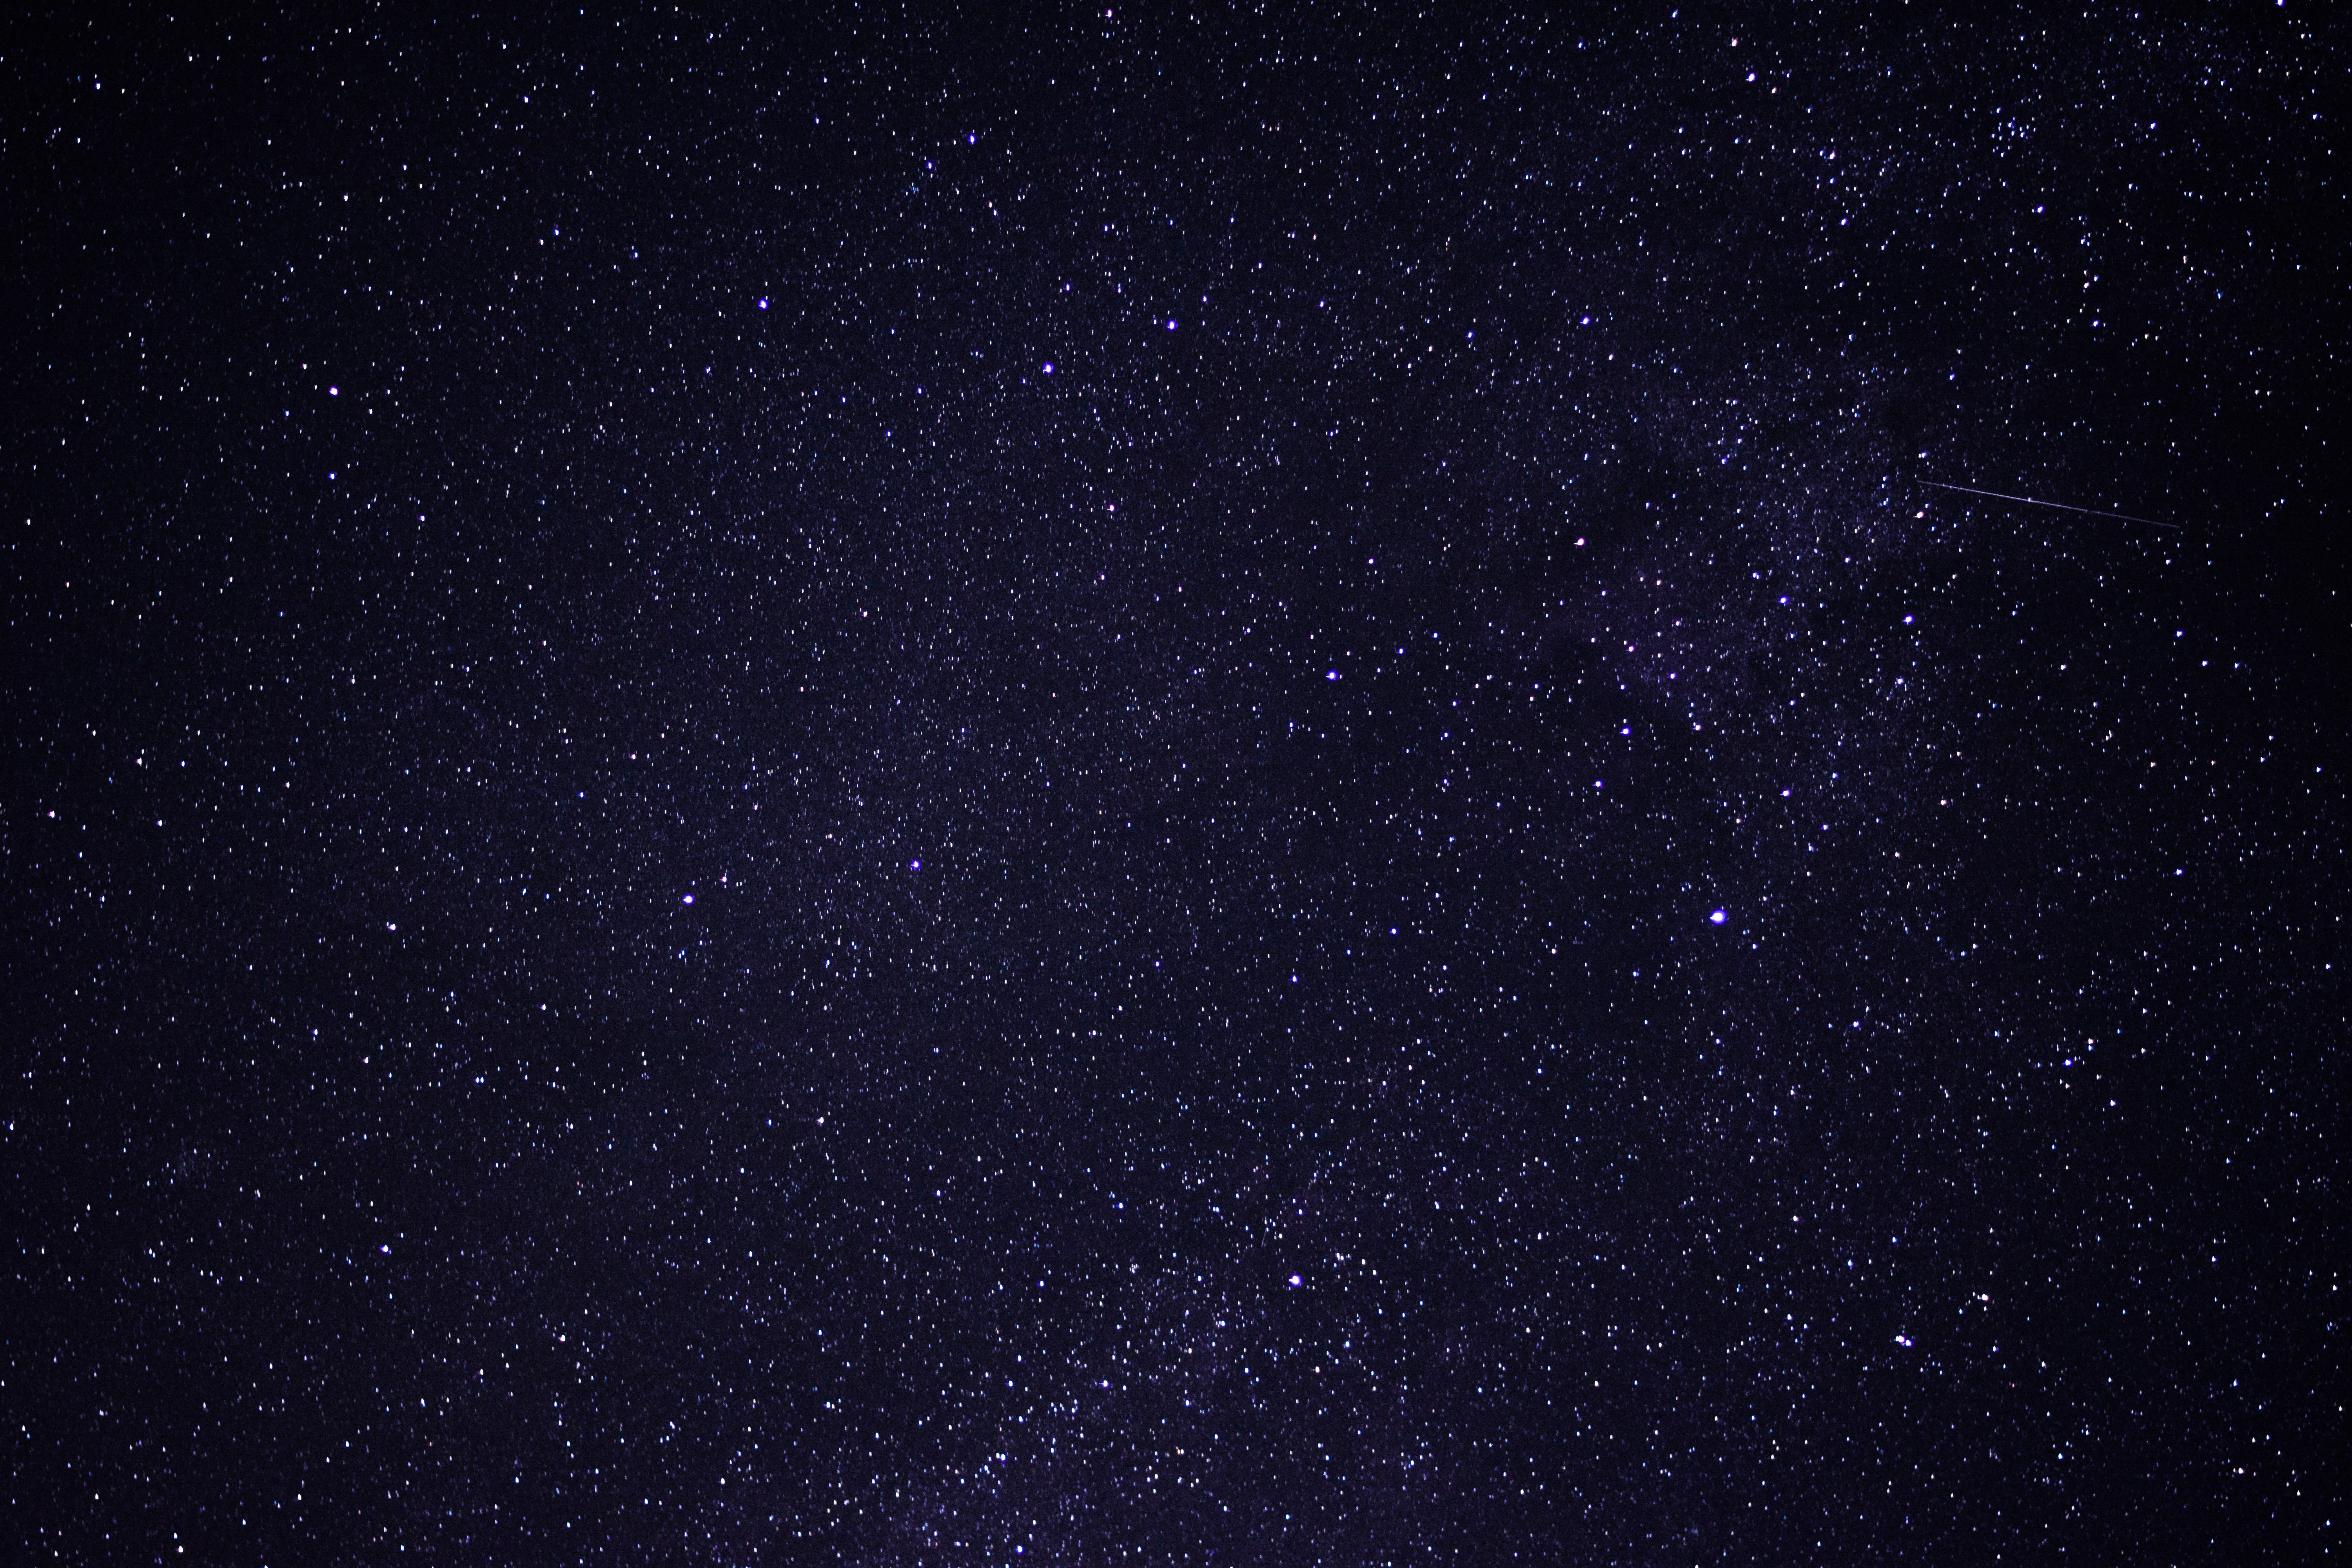 Sky Full Of Stars Space 5k Hd Nature 4k Wallpapers Images